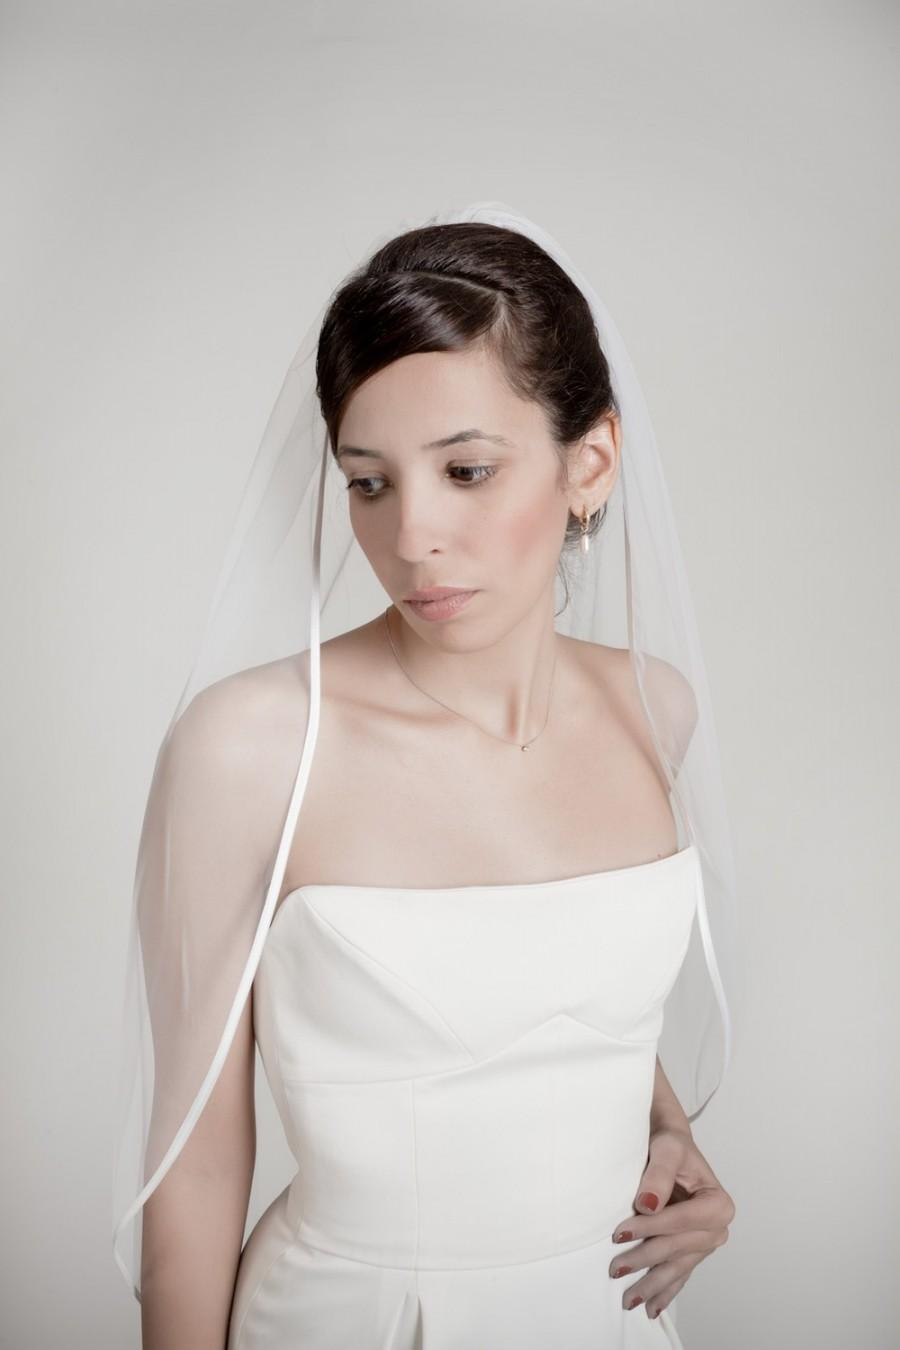 Hochzeit - Cocoon- one layer wedding bridal veil with satin finish, ivory or white [style 006]